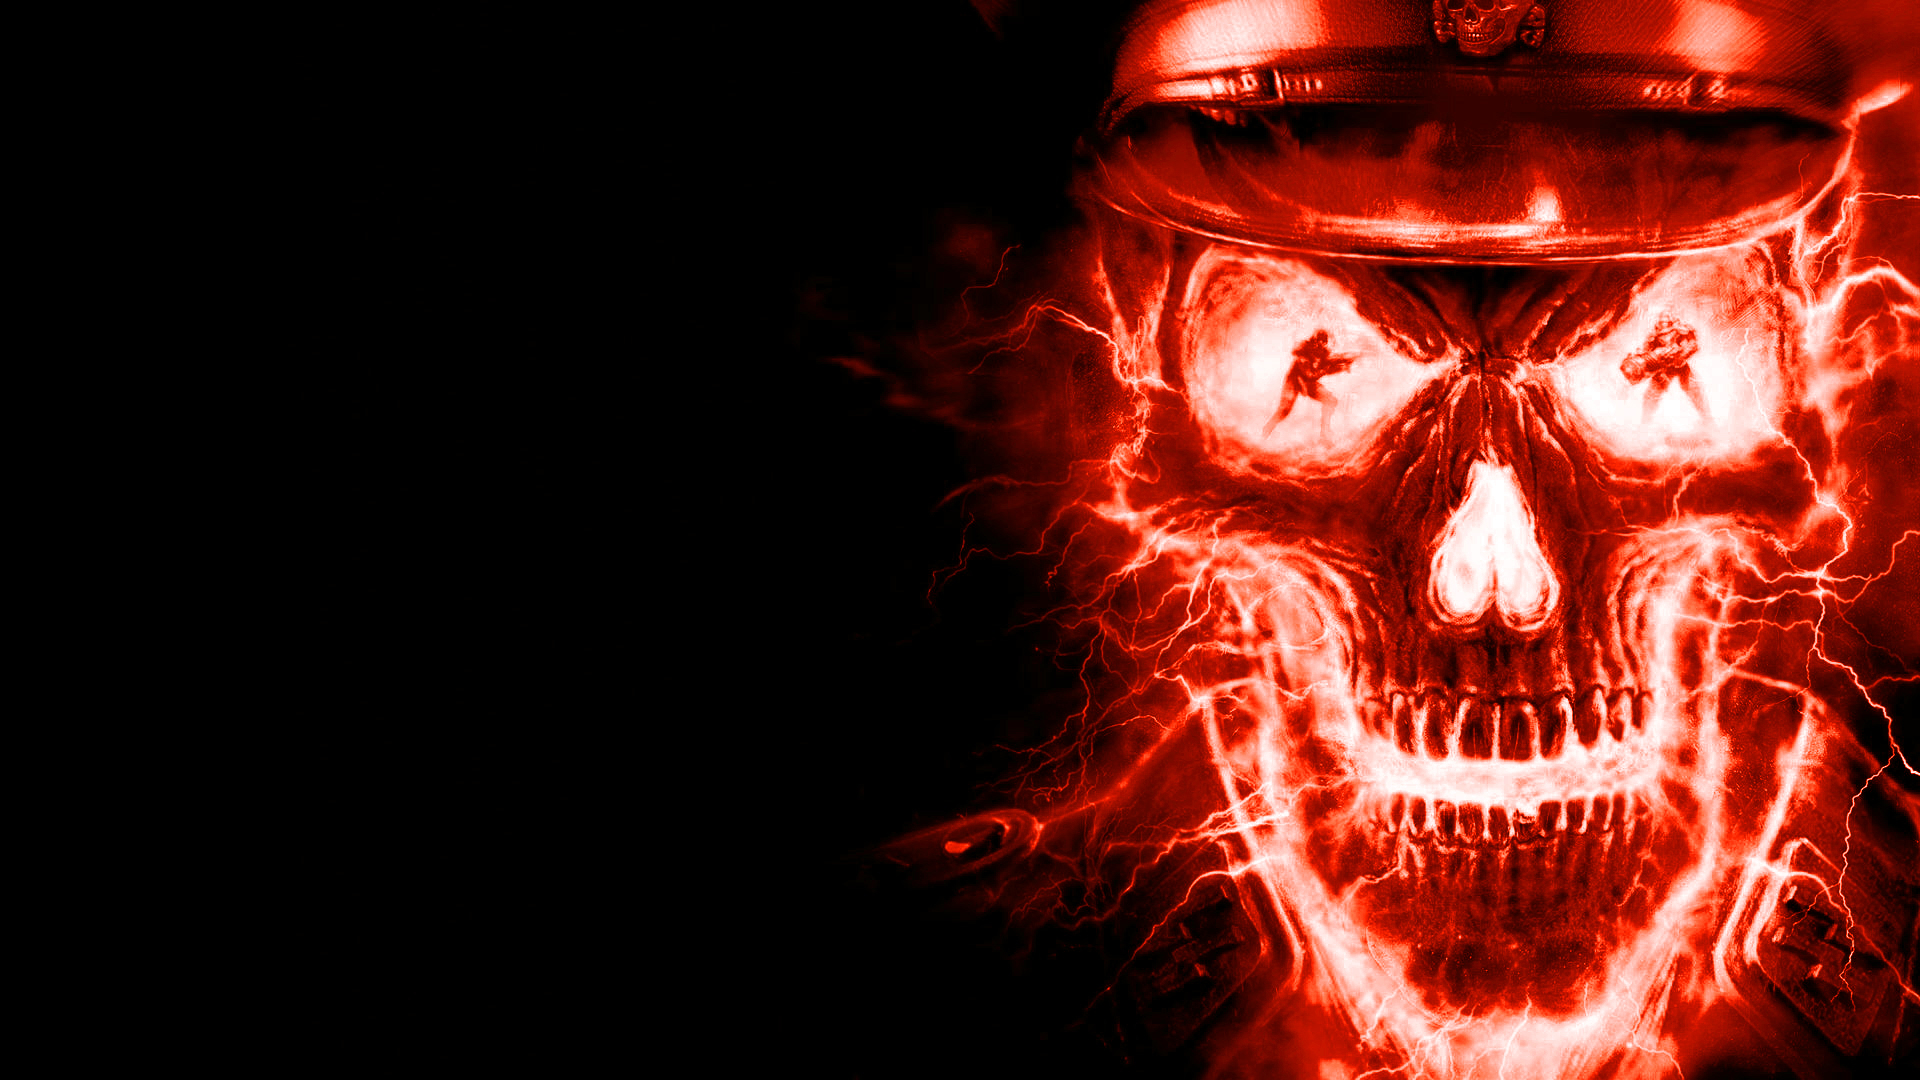 Red Skulls On Fire Photo fire skull texture 1920x1080